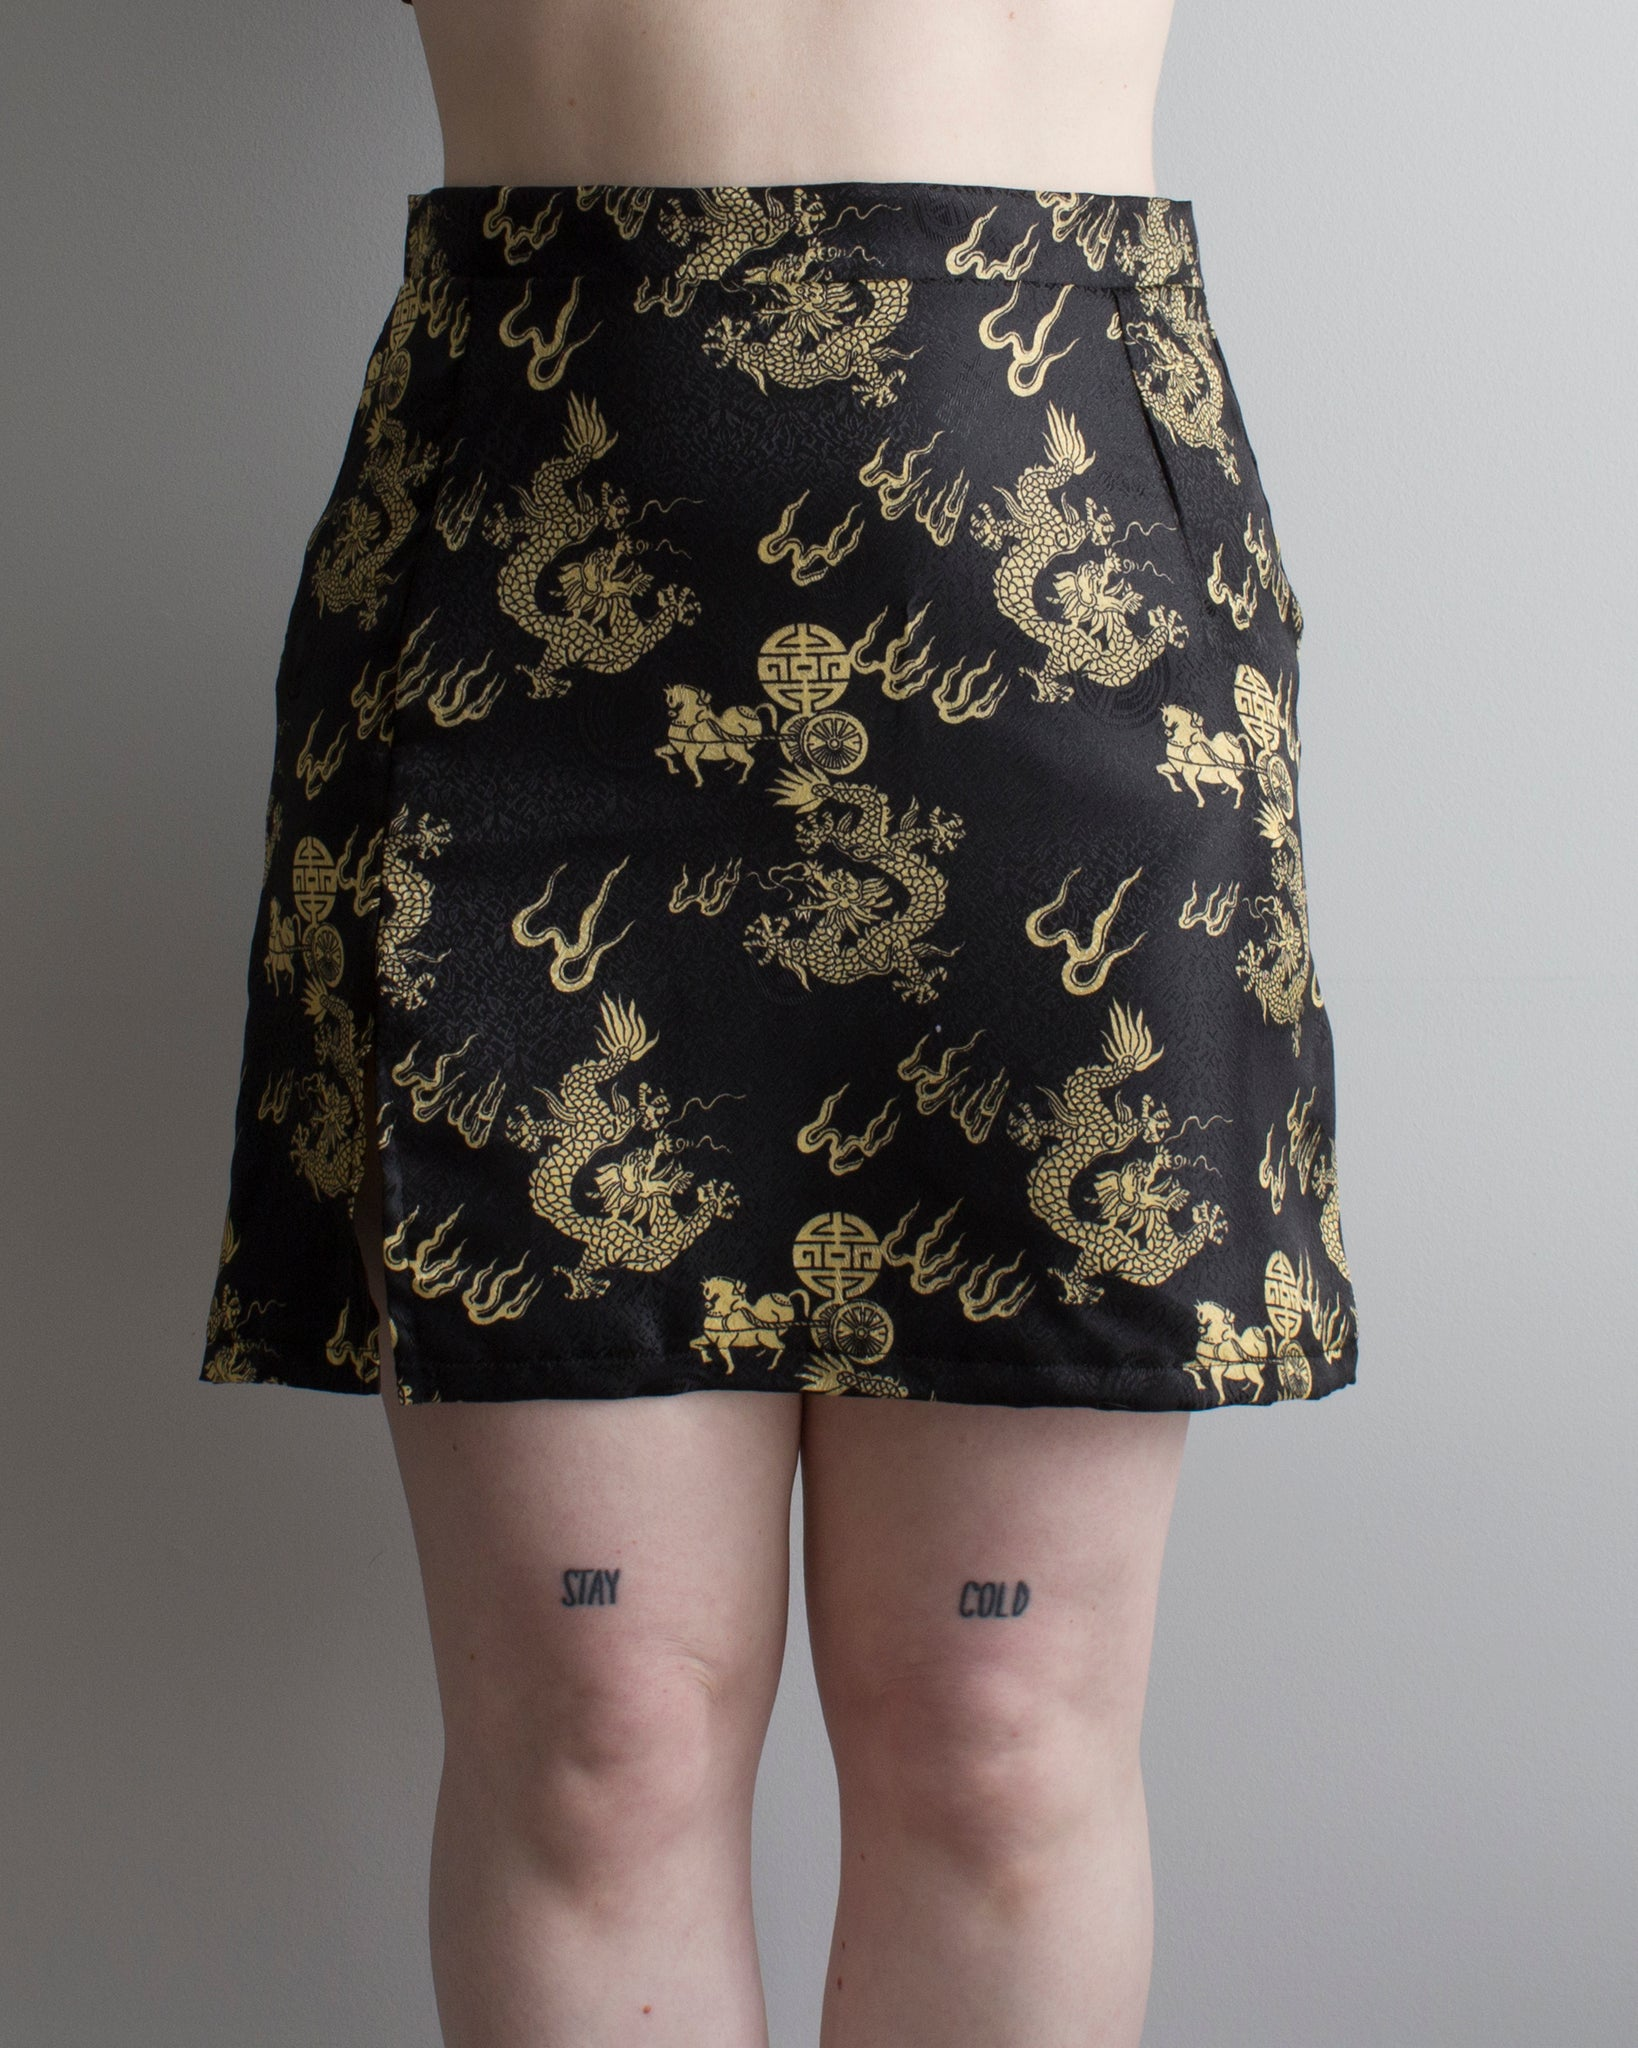 M-L Big Dragon Energy Skirt